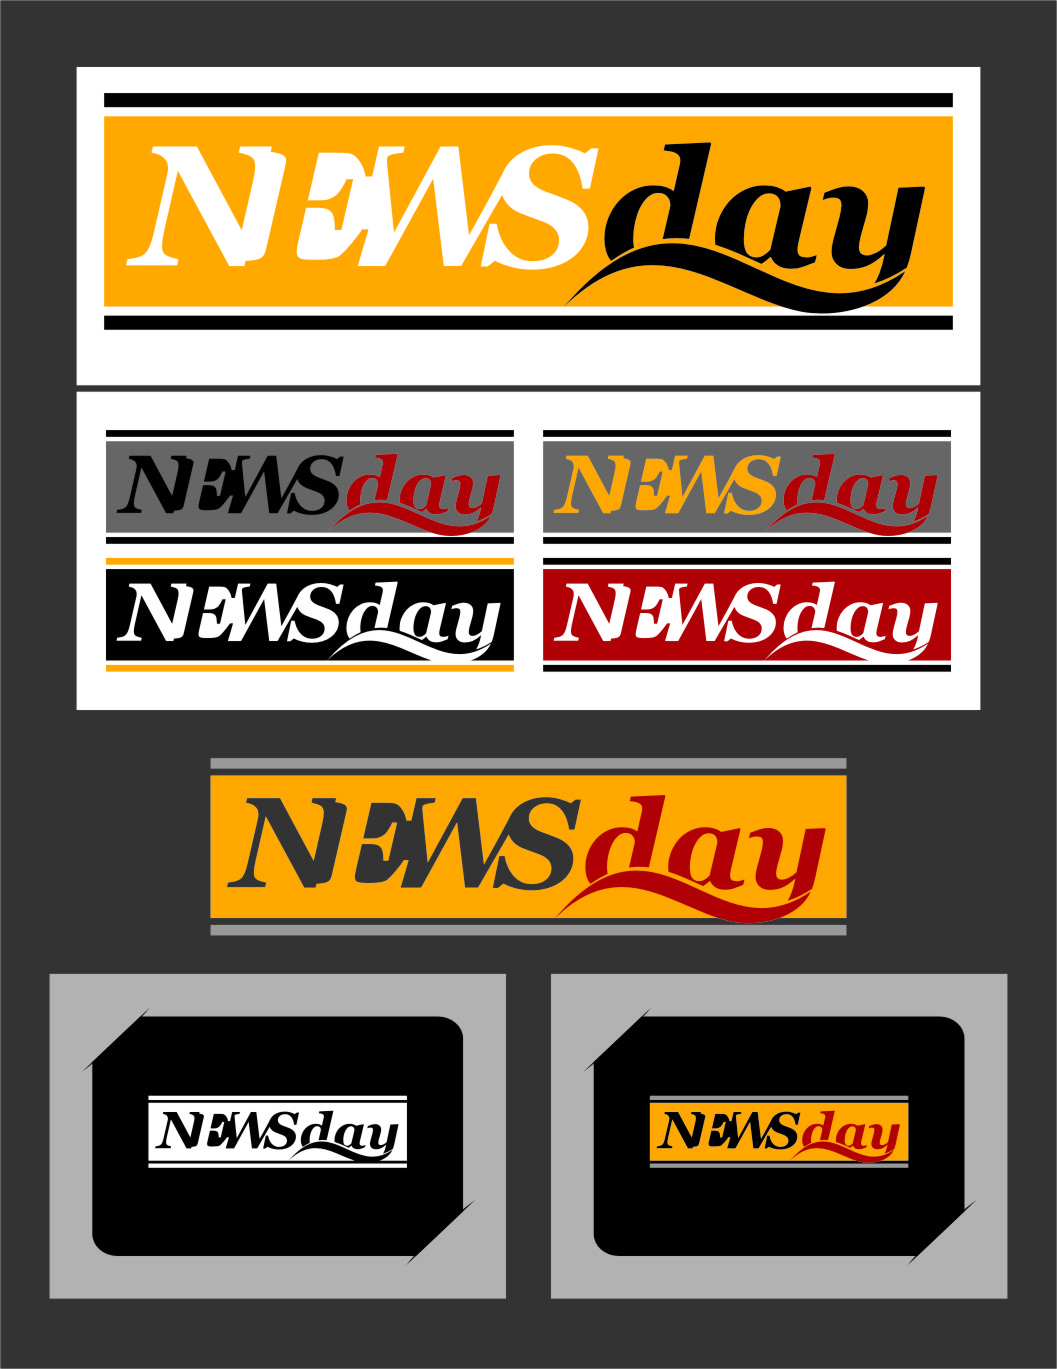 Logo Design by Ngepet_art - Entry No. 37 in the Logo Design Contest Artistic Logo Design for Newsday.